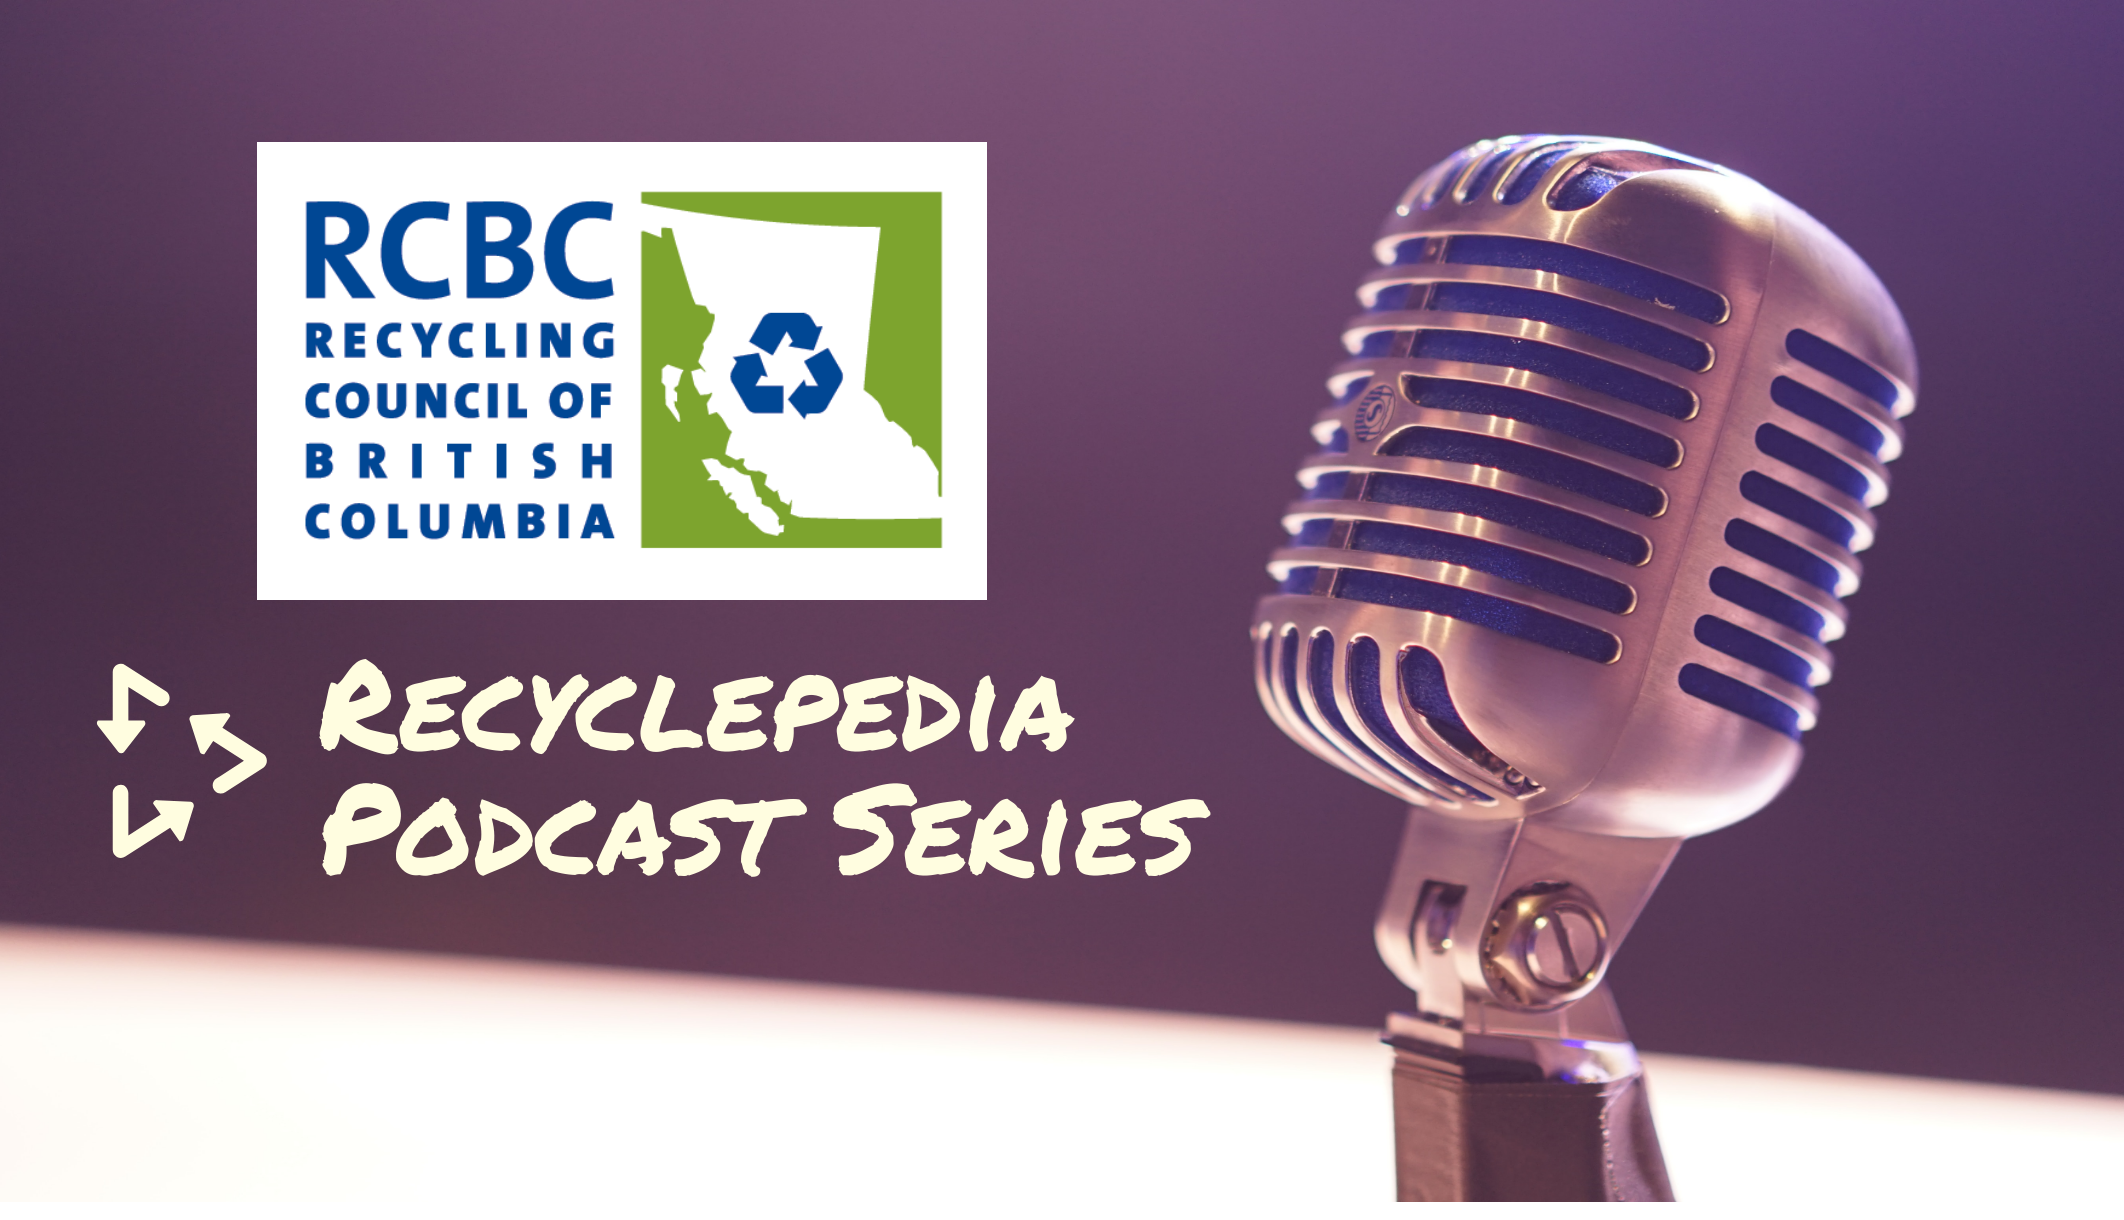 RCBC Recyclepedia Podcast